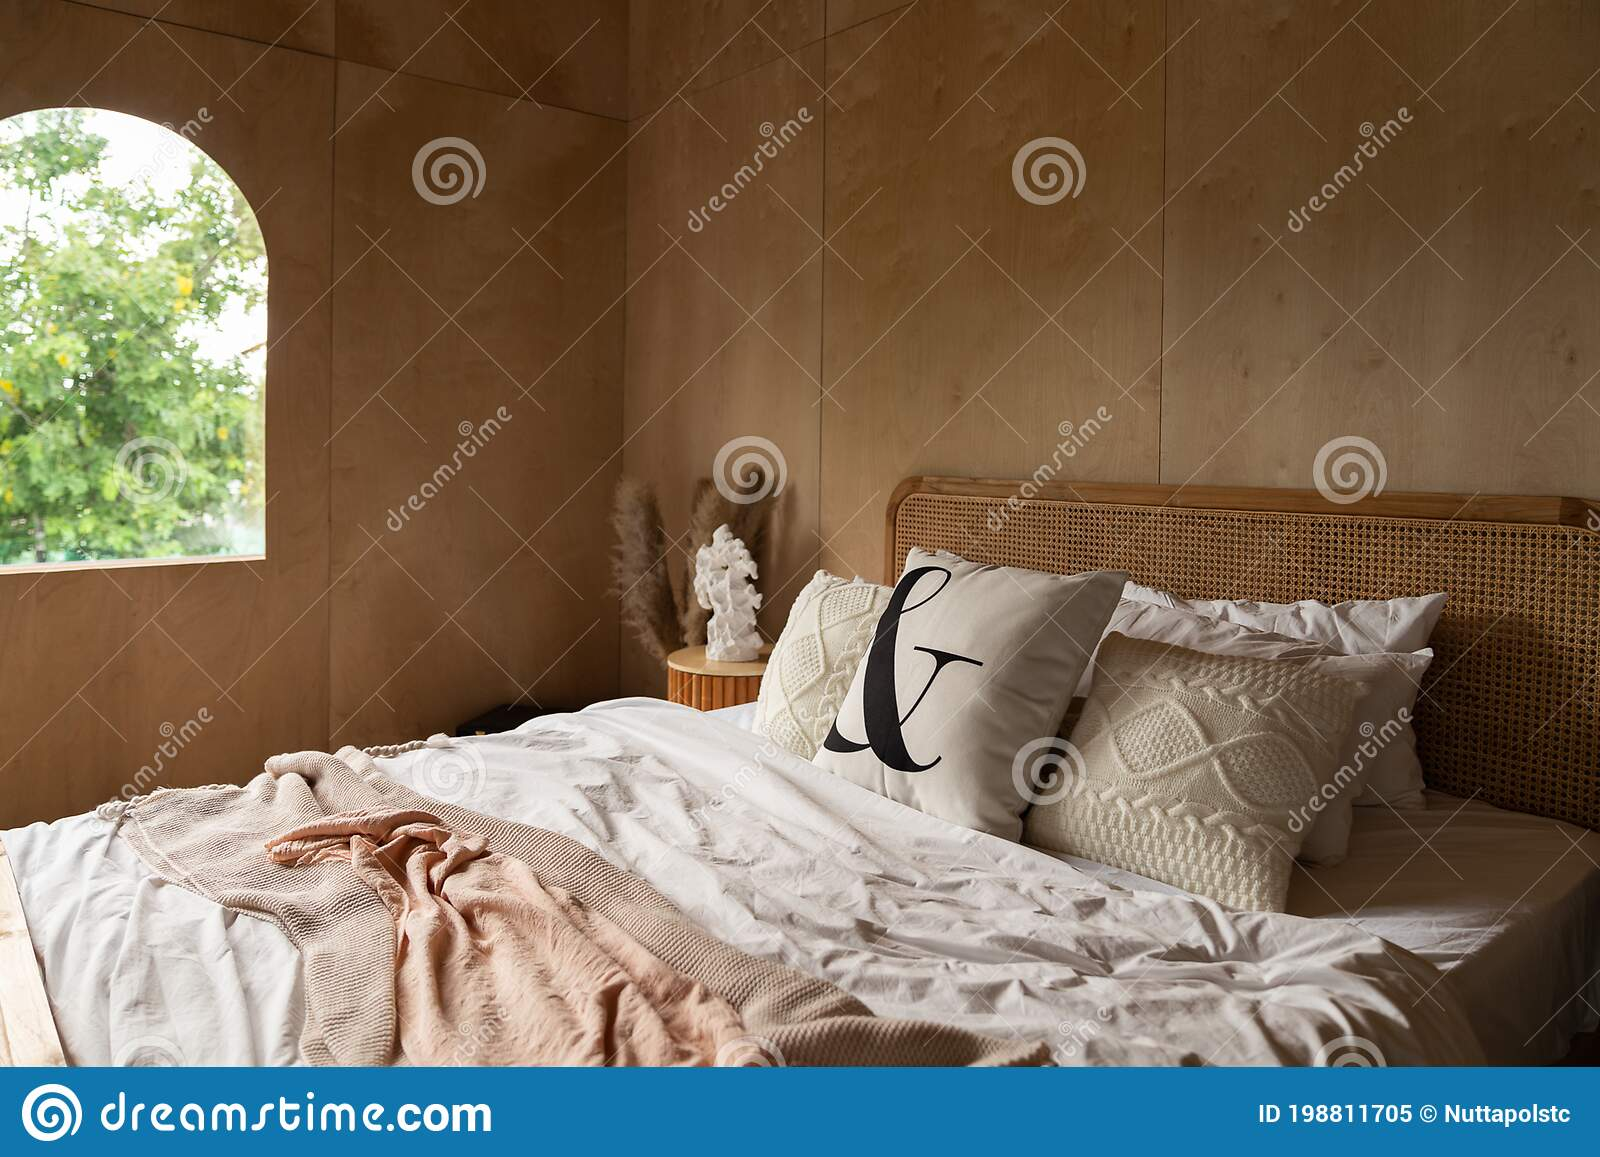 stylish bedroom corner with rattan headboard bed and soft pillow decoration with with plywood wall on the background cozy stock image image of fabric house 198811705